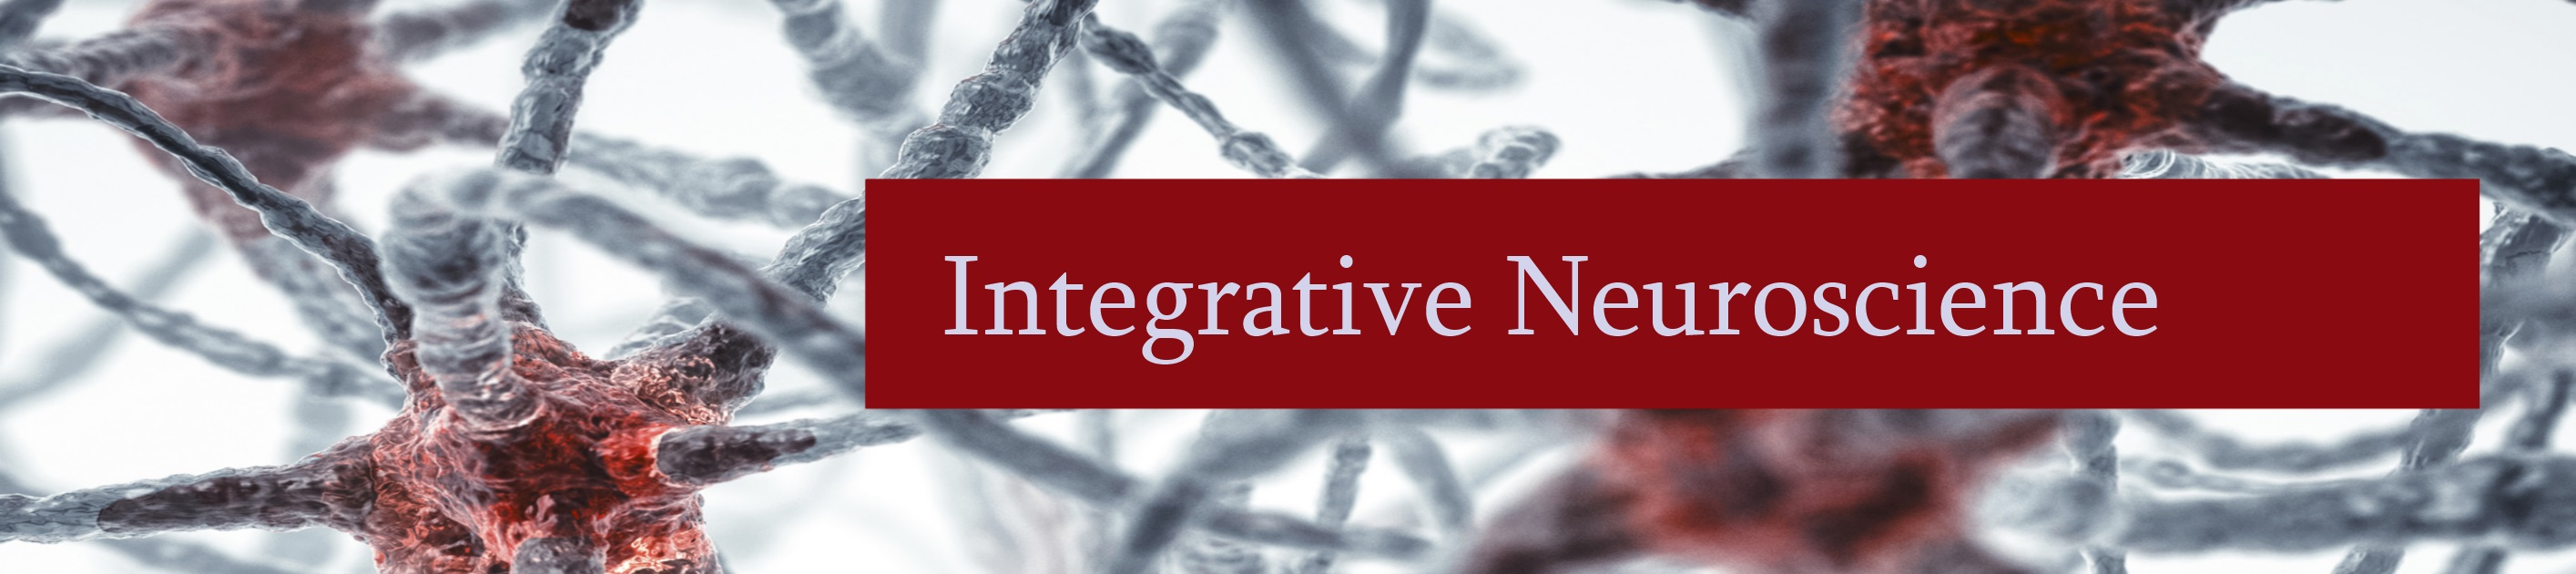 integrative neuroscience banner picture